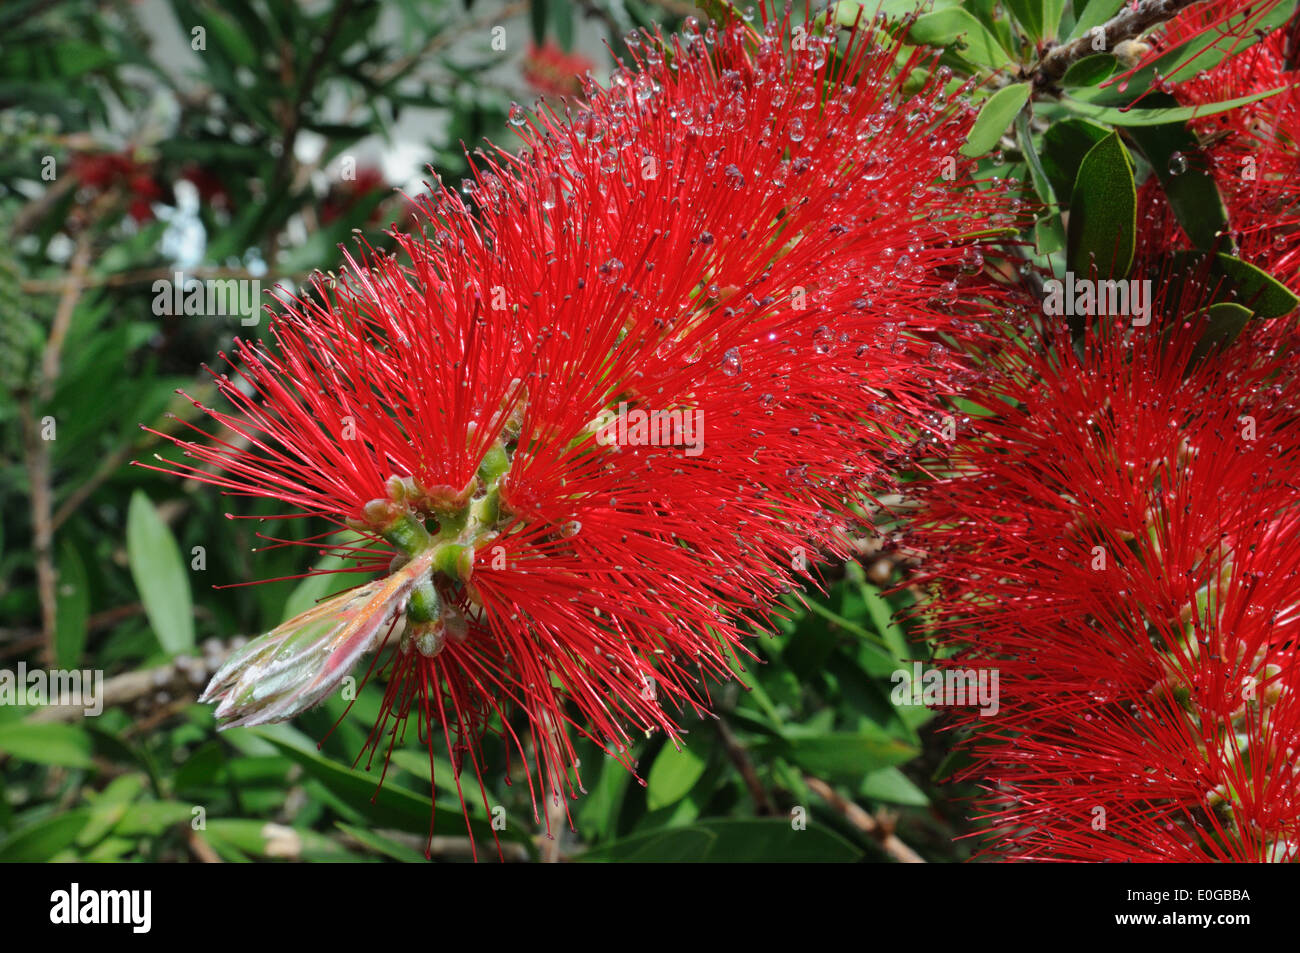 Droplets of water on Red Bottle bush flowers - Stock Image